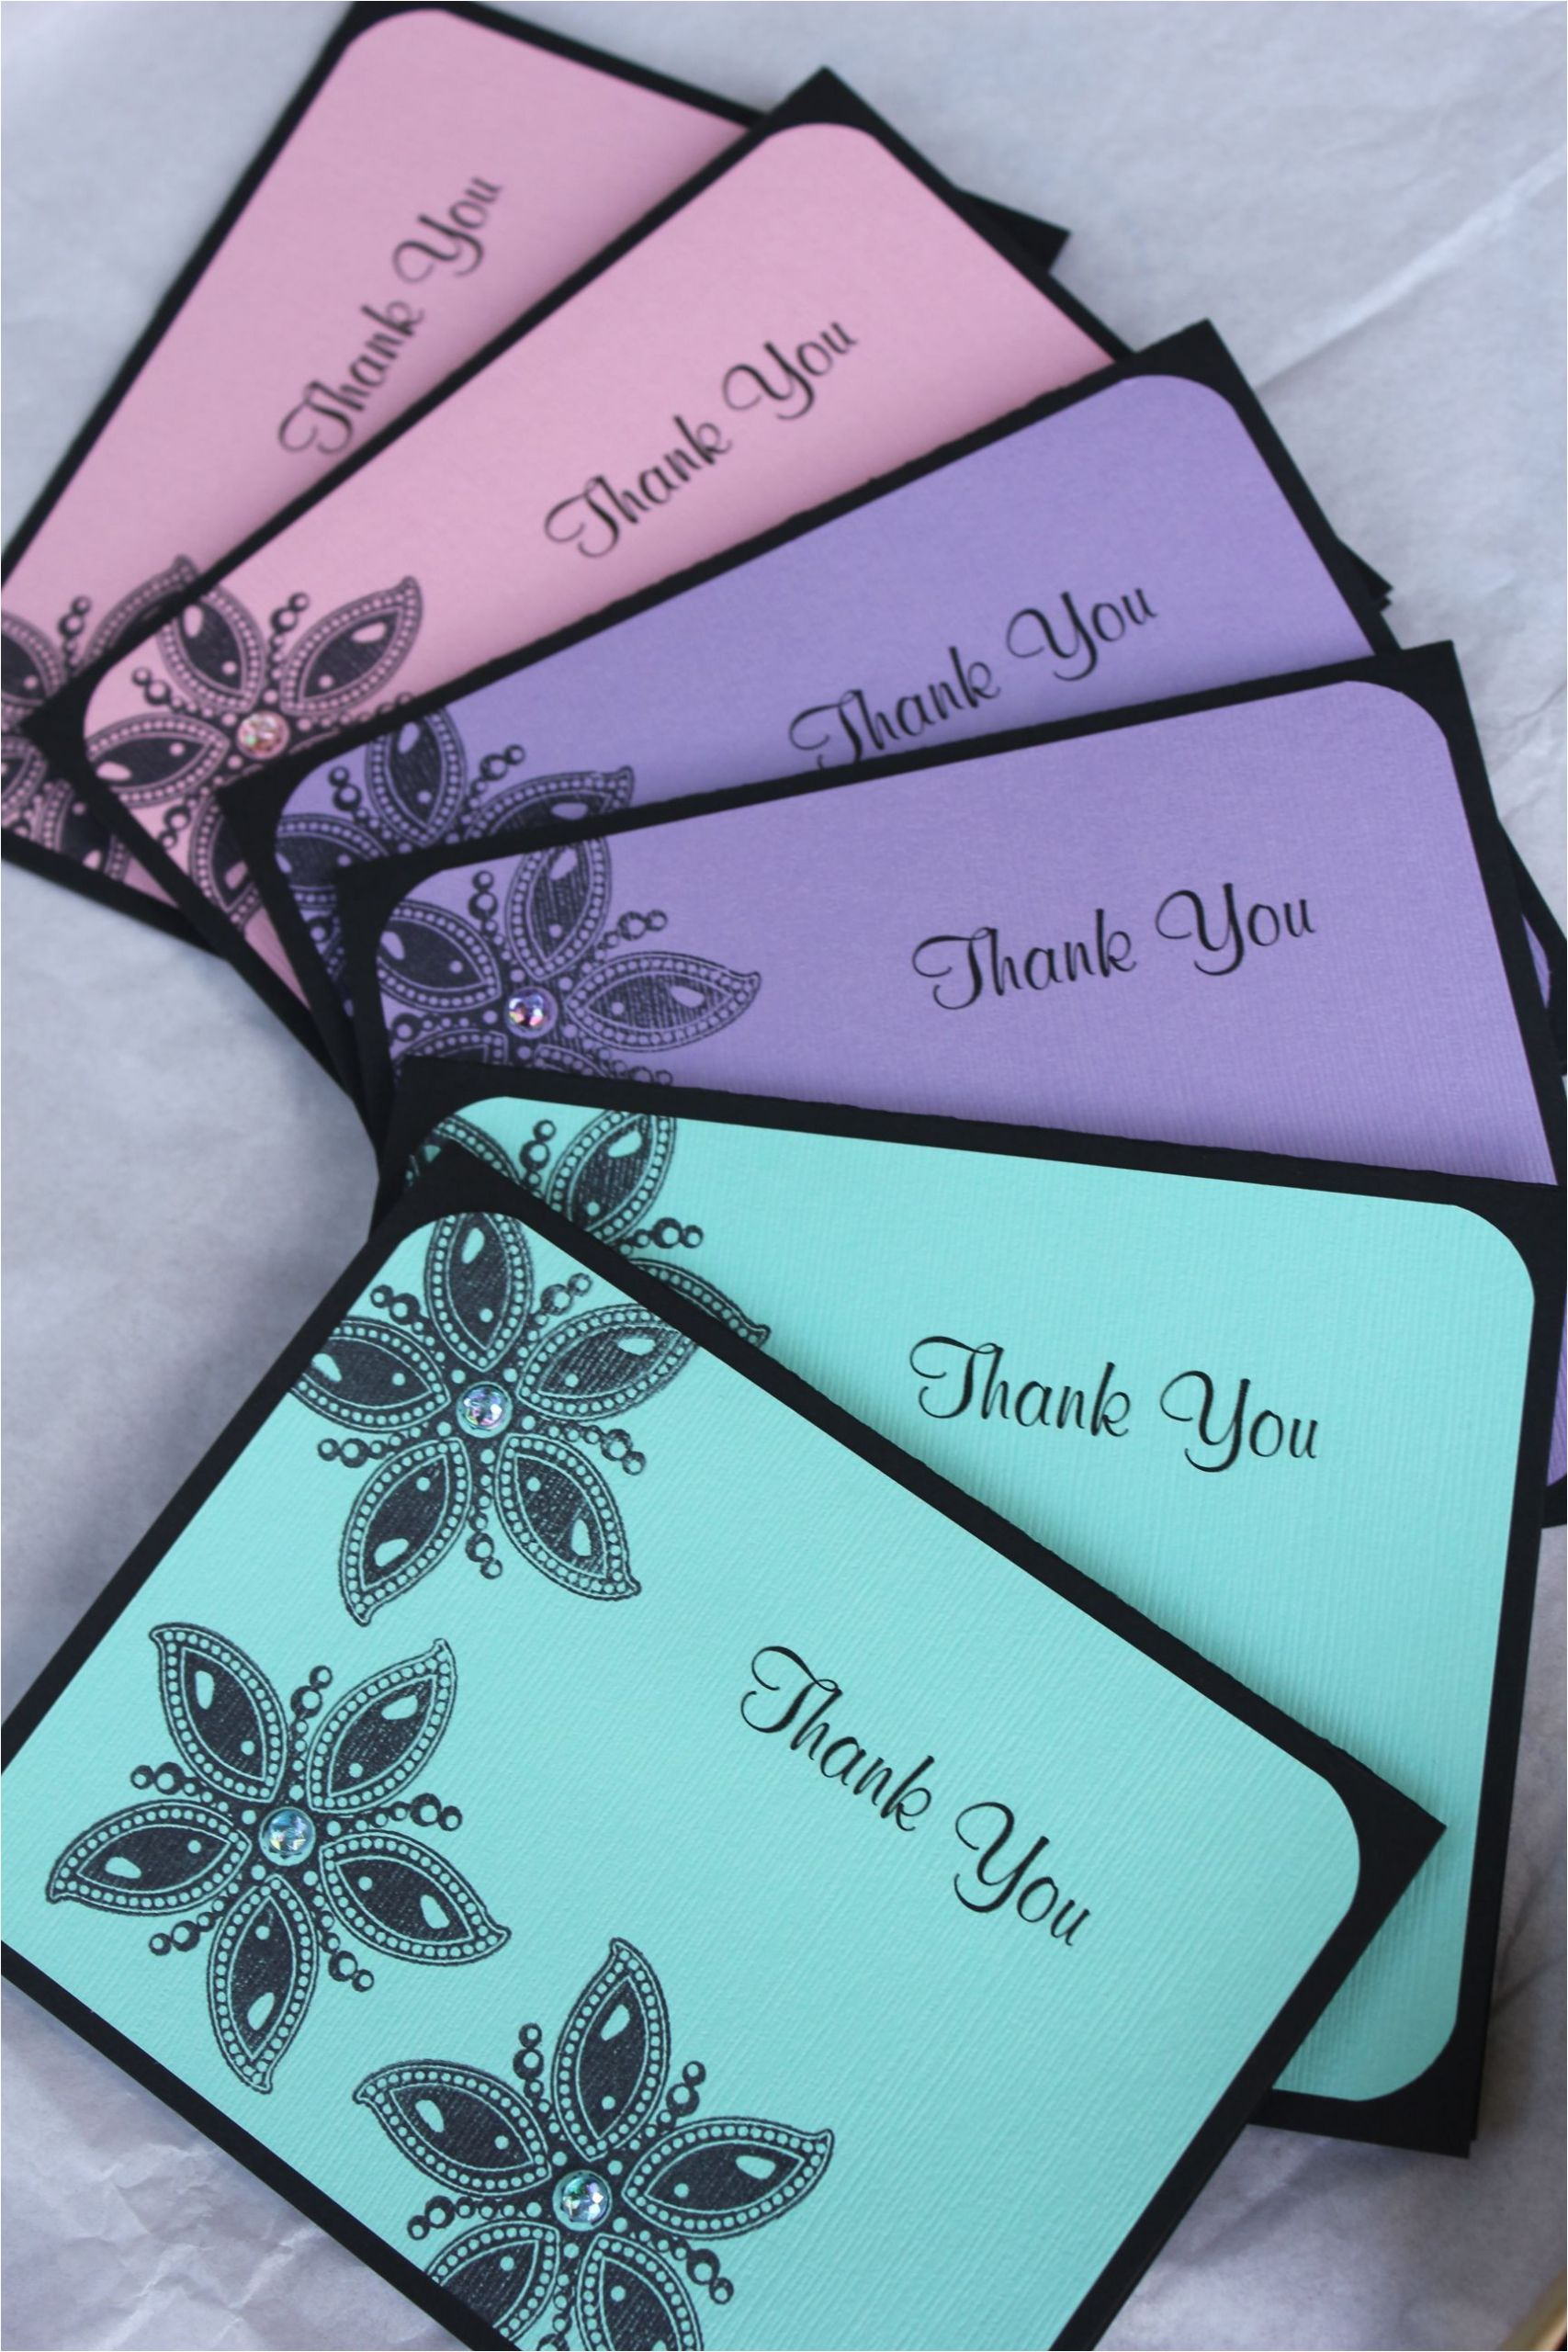 Unique Thank You Card Designs Handmade Thank You Cards by Craftedbylizc Handmade Thank